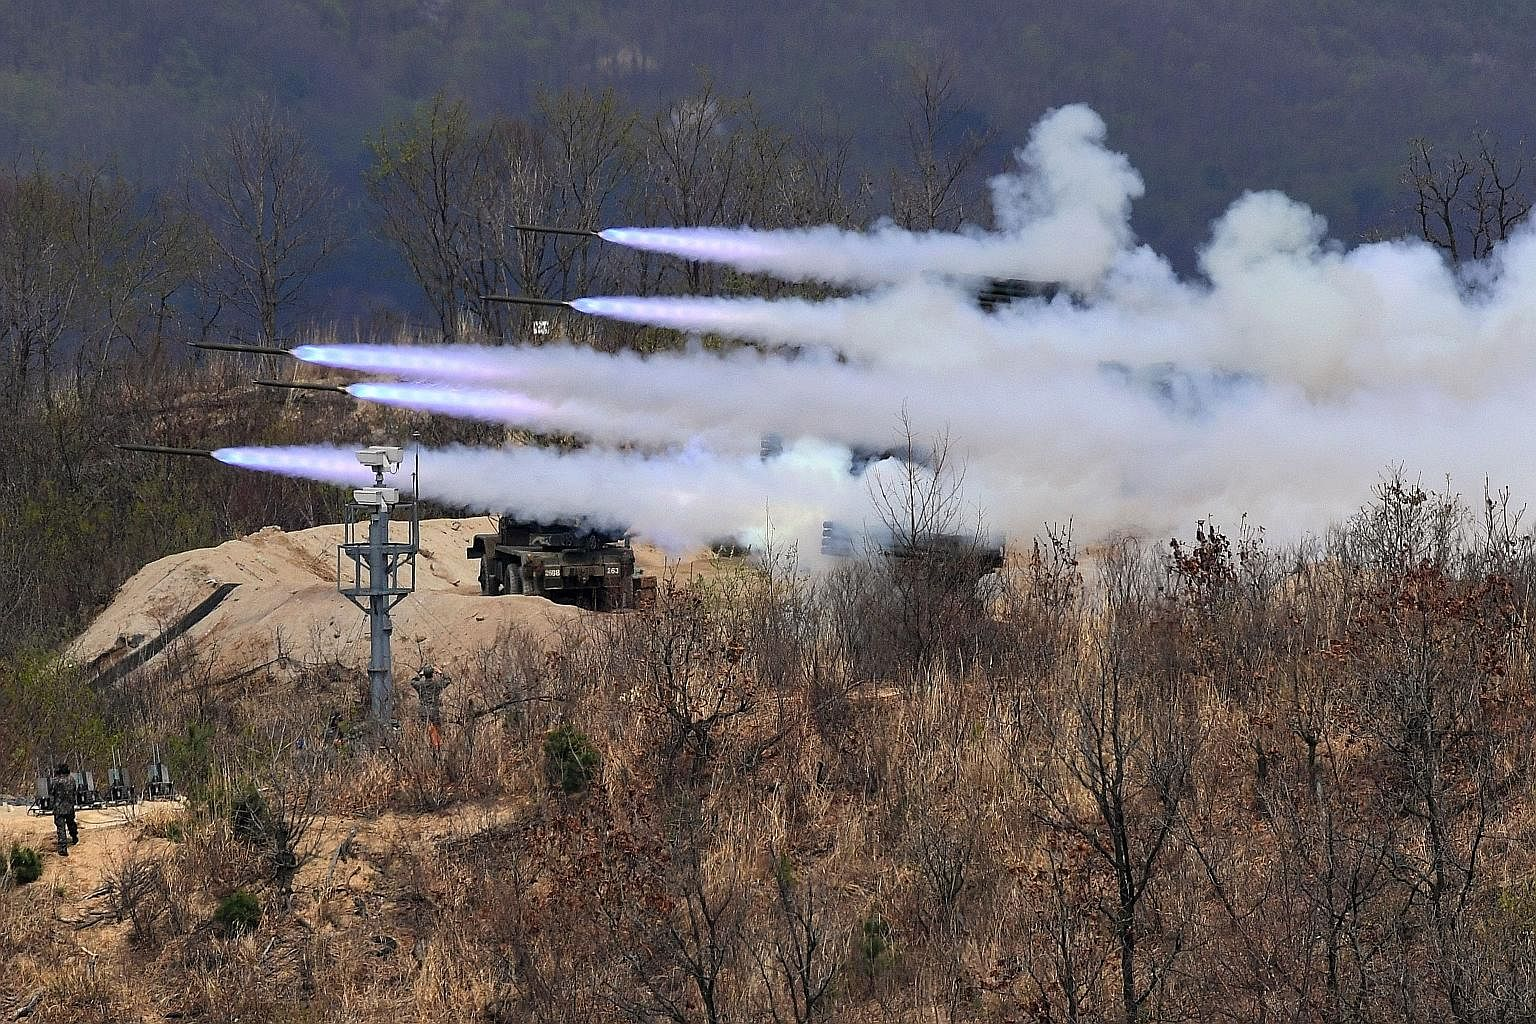 Joint military drills between the US and South Korea were cancelled in June. Some experts say this was done without discernible gain to the US.